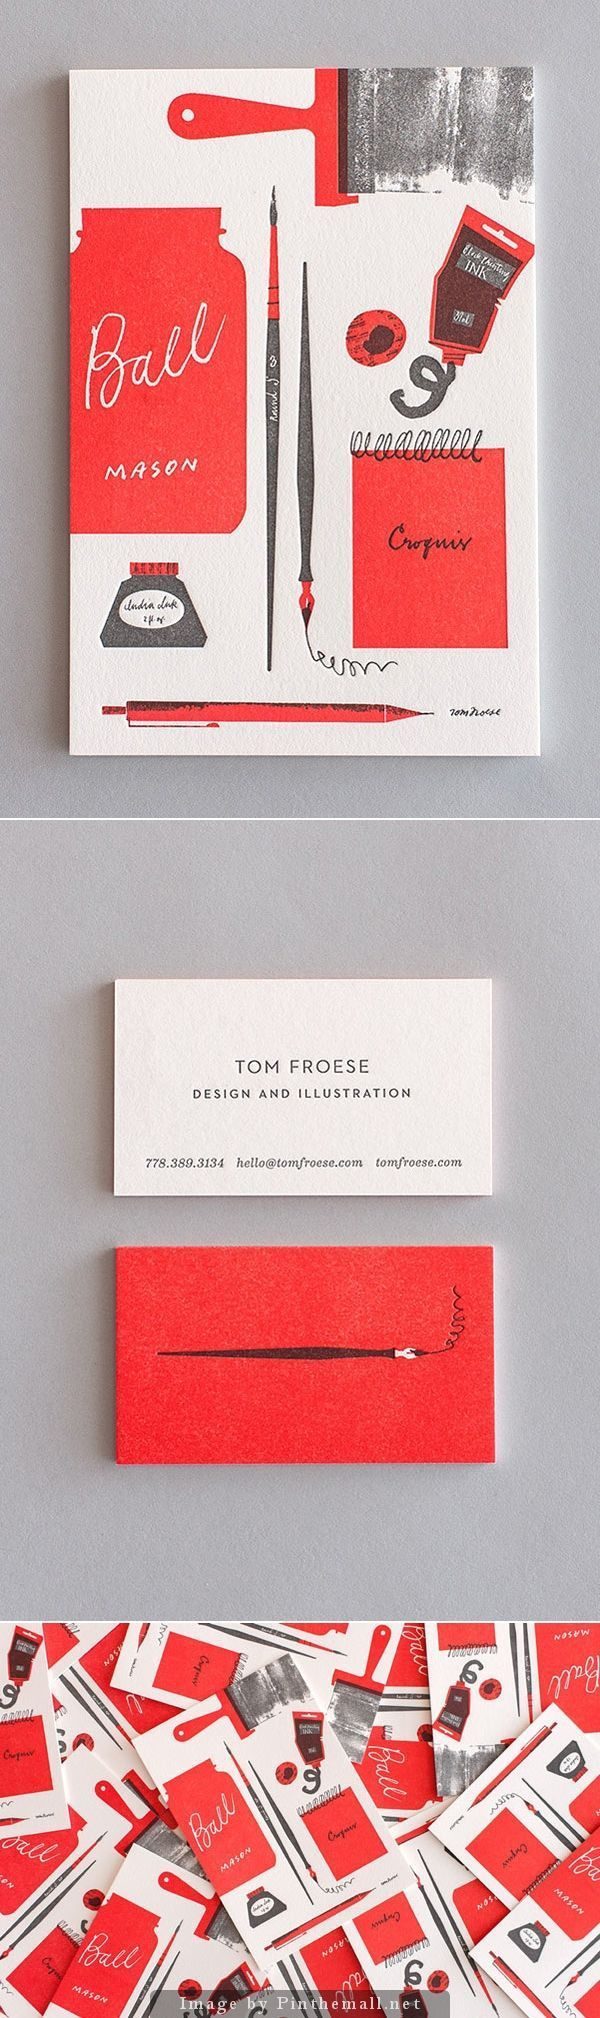 best ideas about business illustration flat gallery print design inspiration business cards